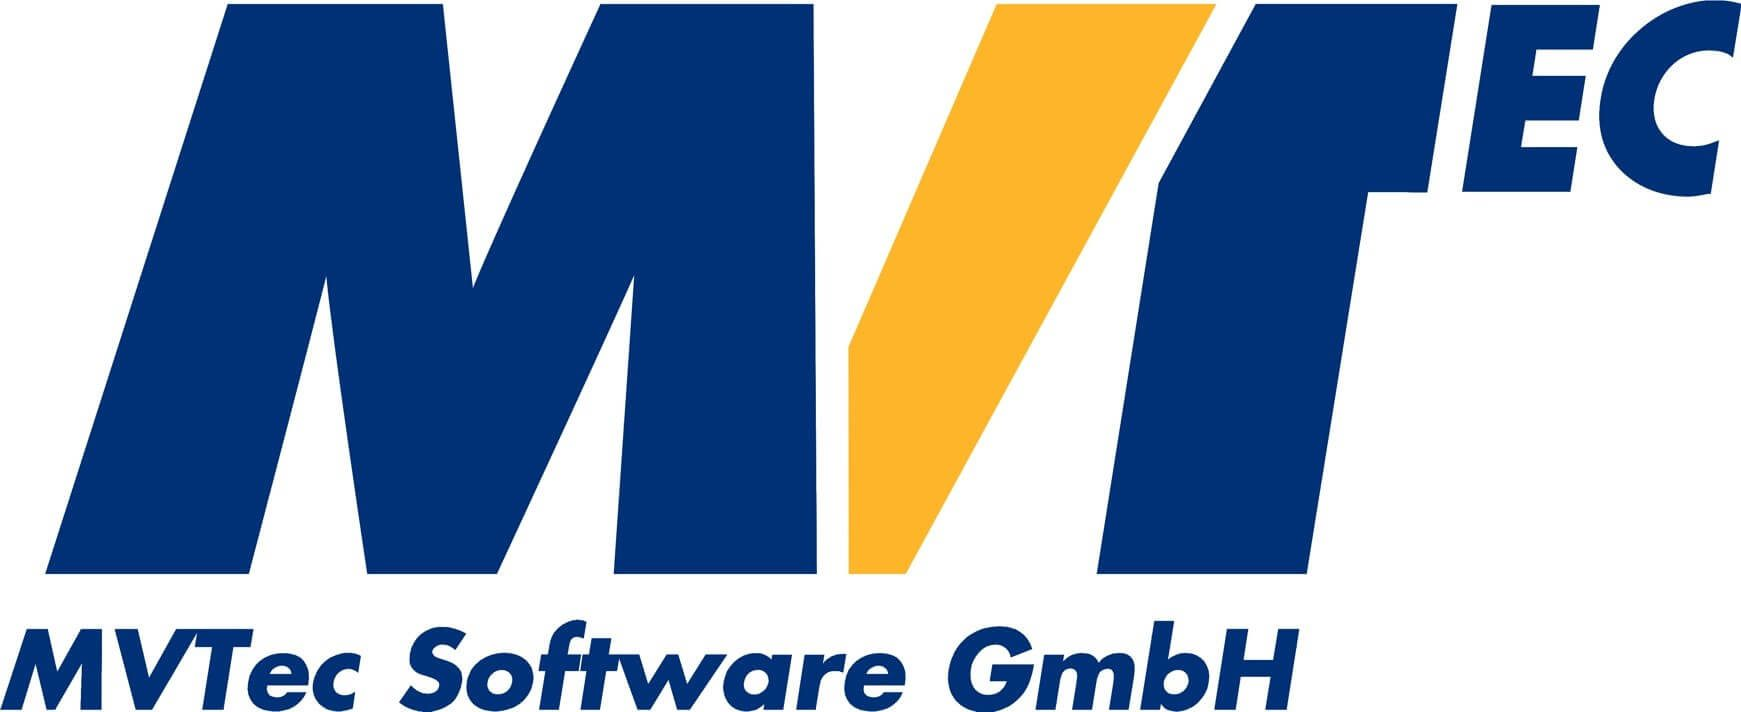 MVTec Software GmbH logo